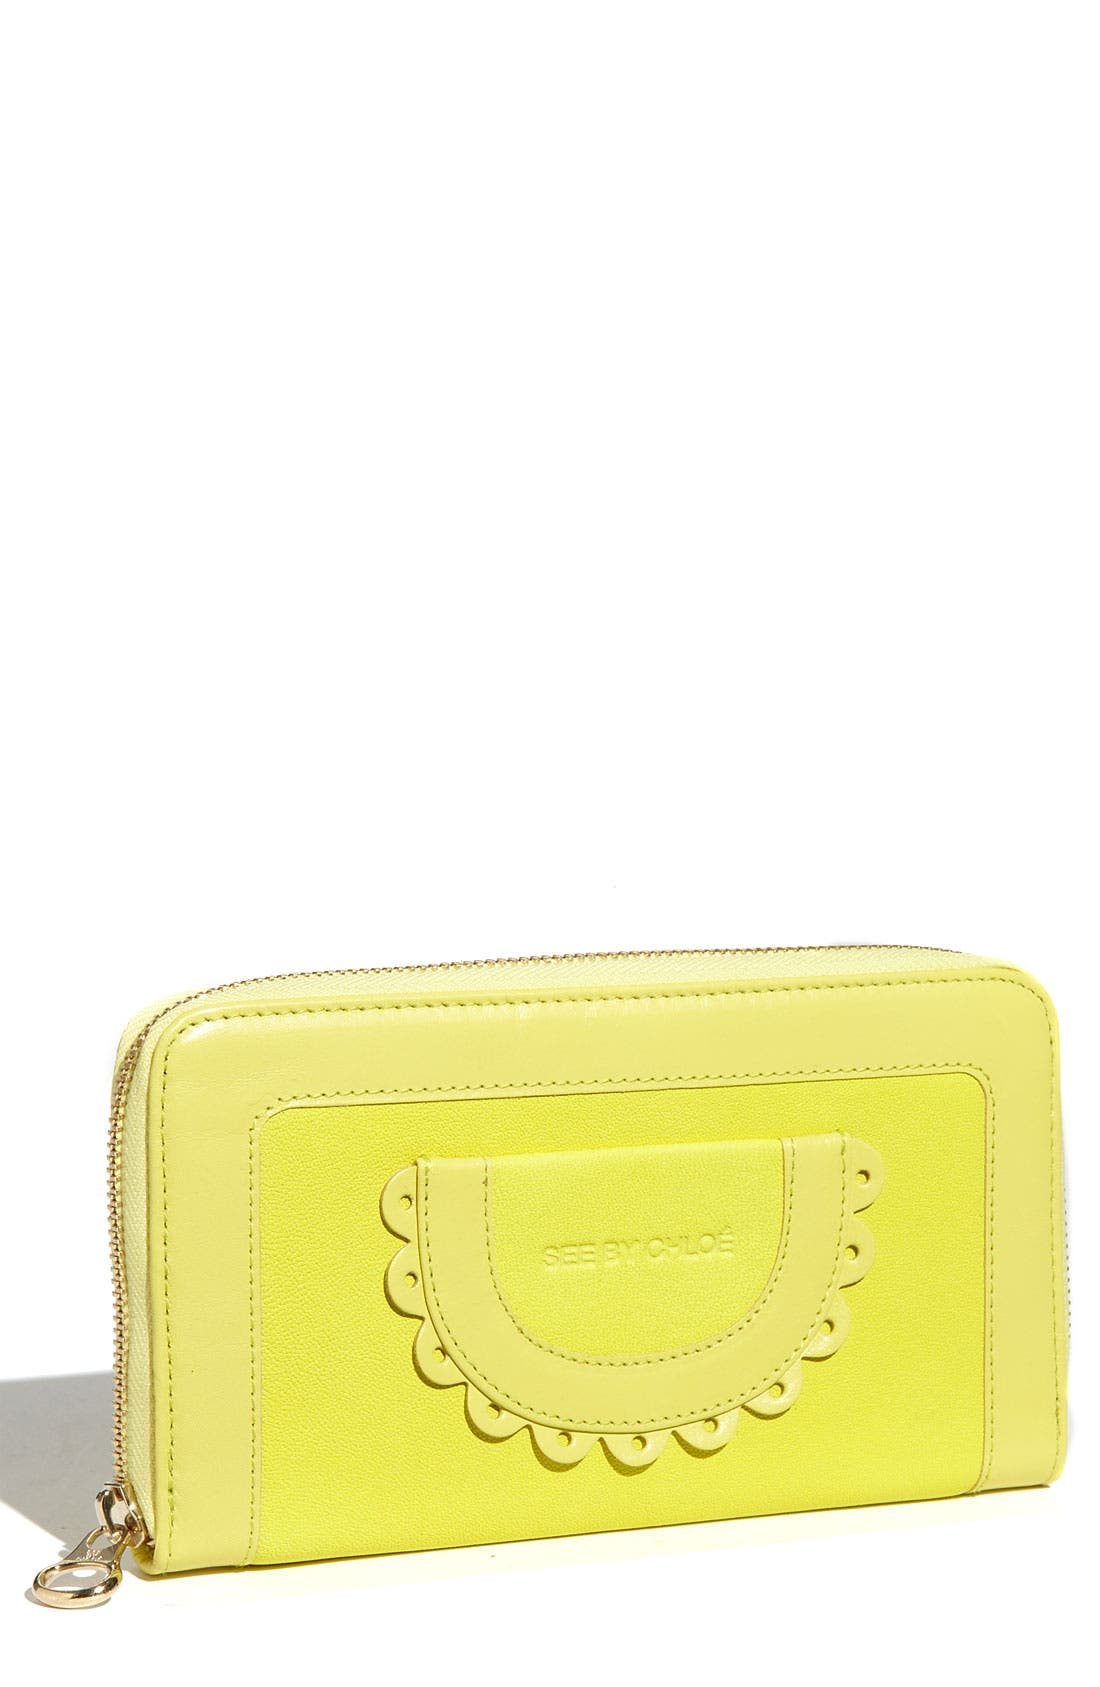 Alternate Image 1 Selected - See By Chloé Zip Around Wallet